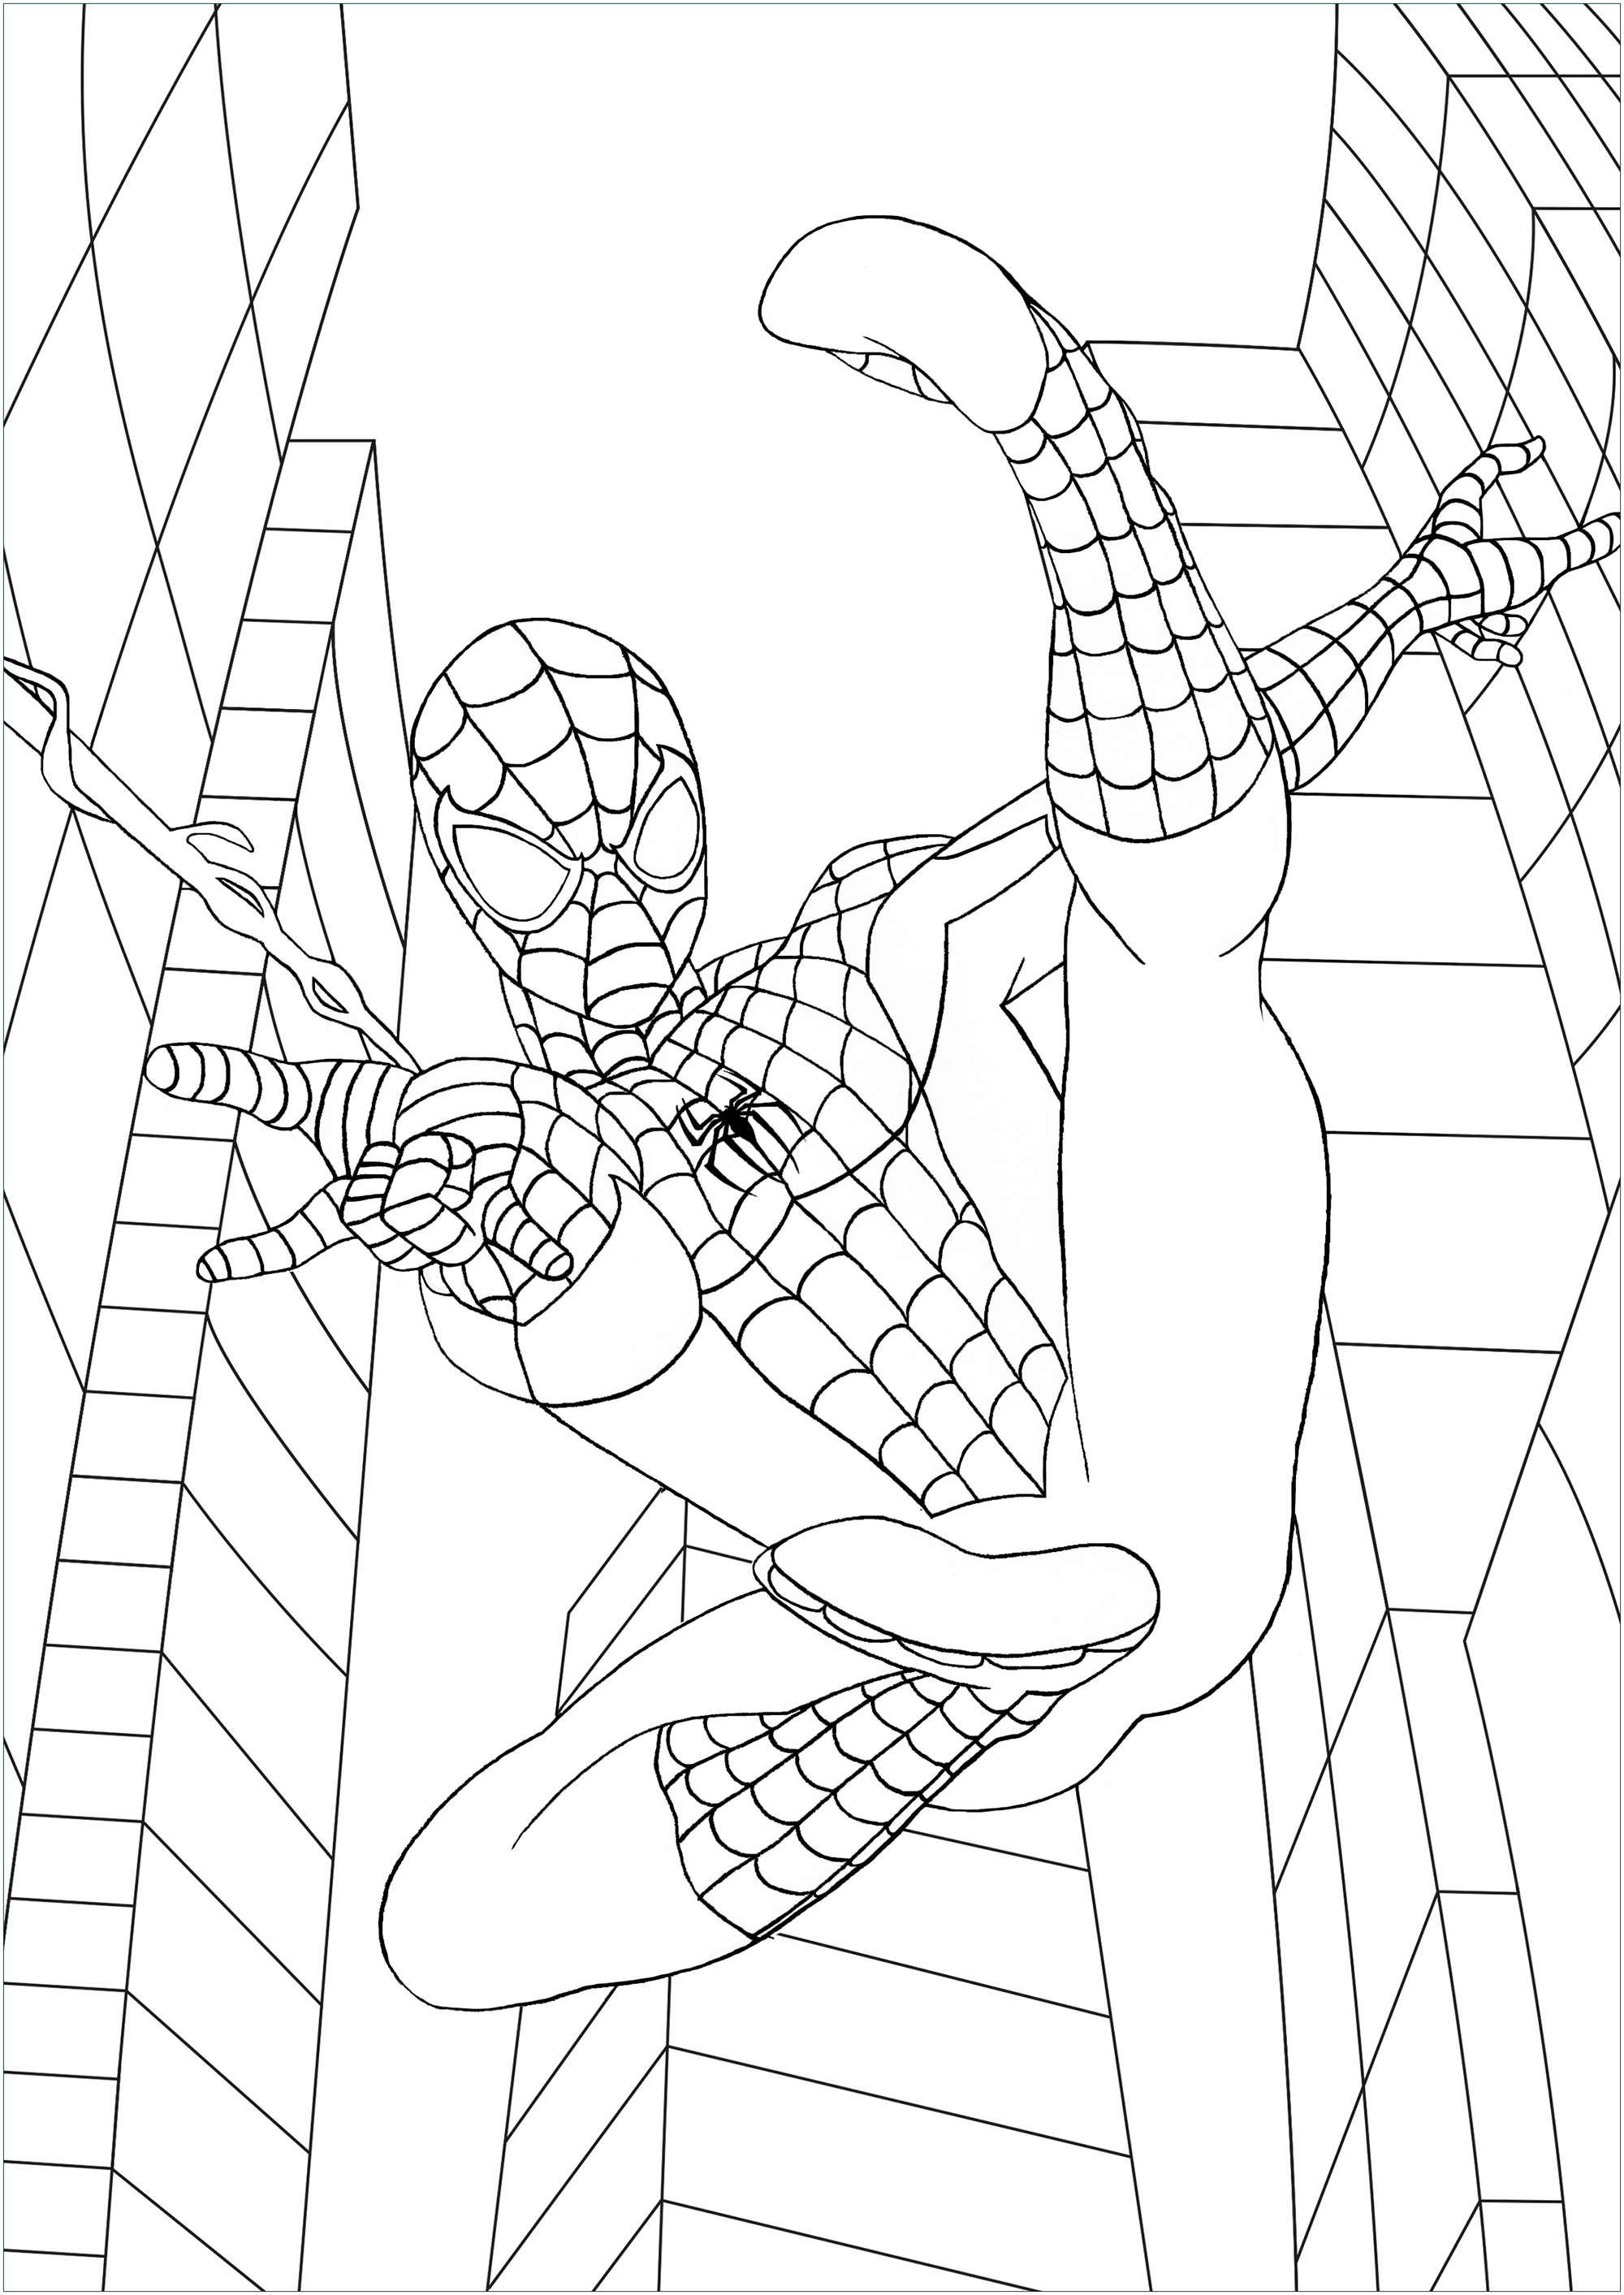 coloring pictures of spiderman spiderman coloring pages download free coloring sheets of pictures coloring spiderman